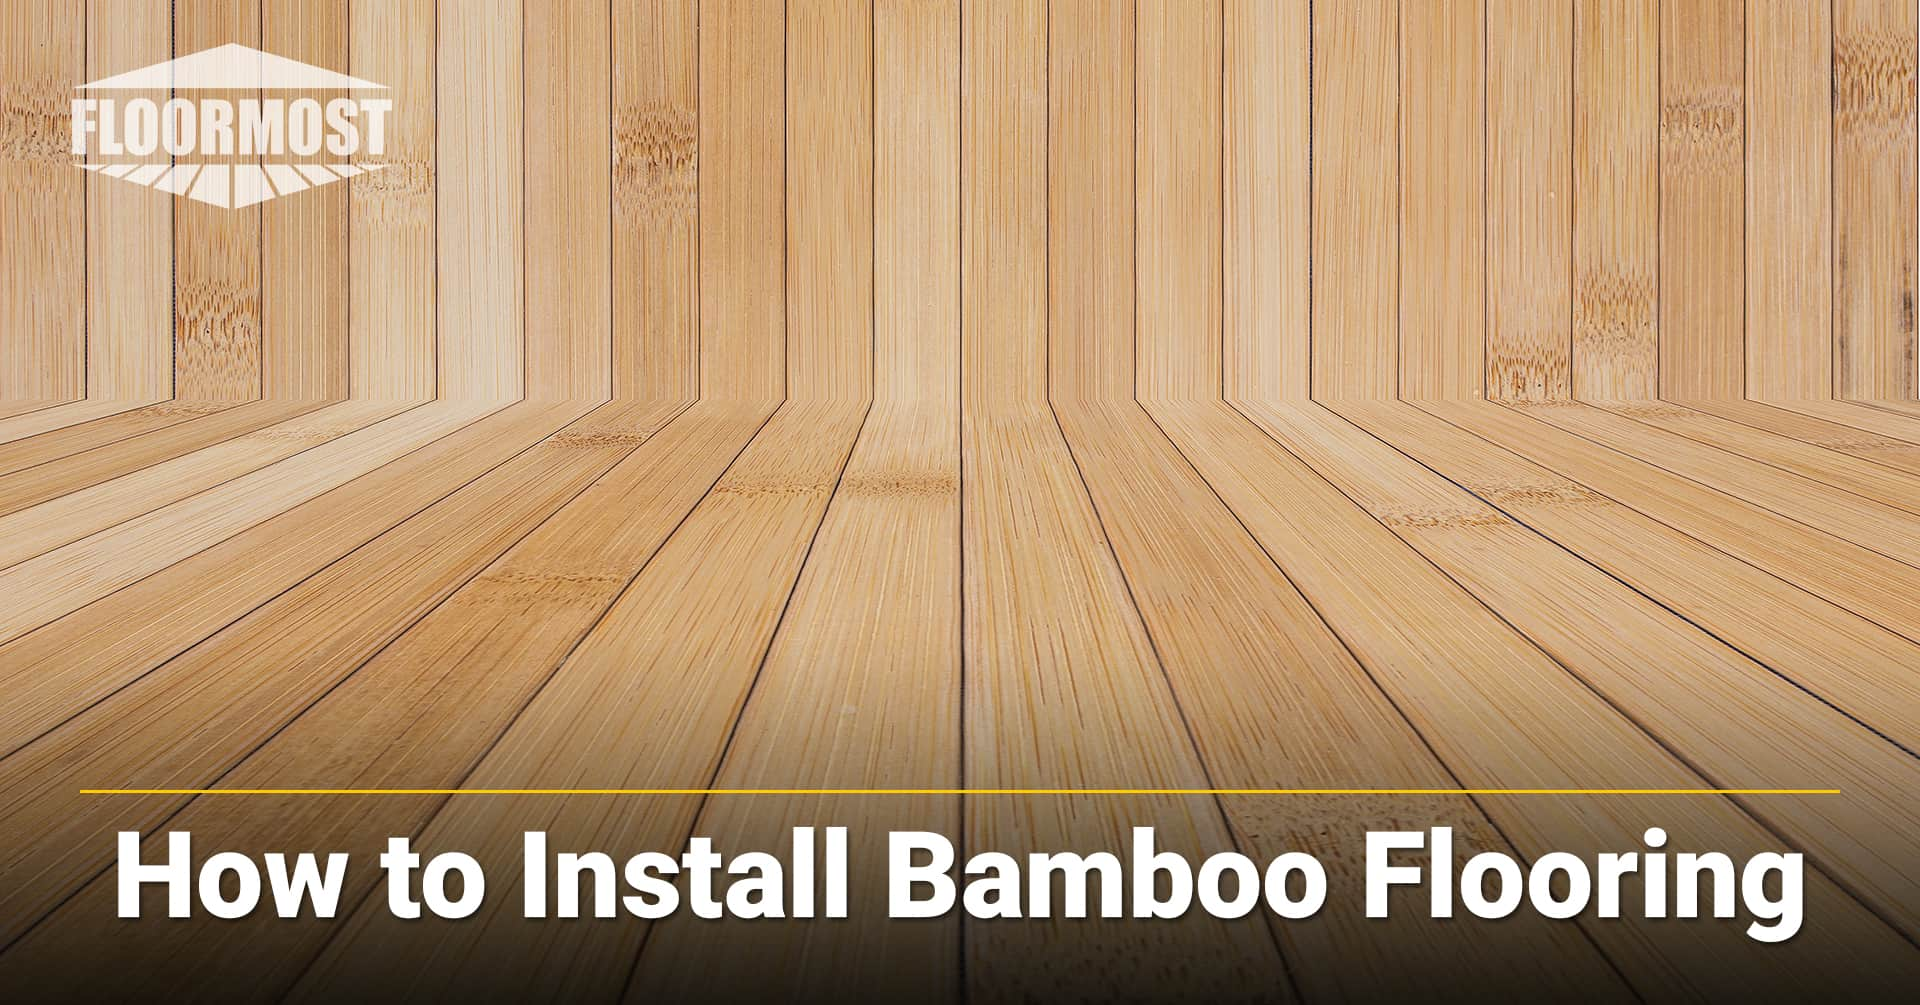 5 Steps to Install Bamboo Flooring | Simple DIY Guides